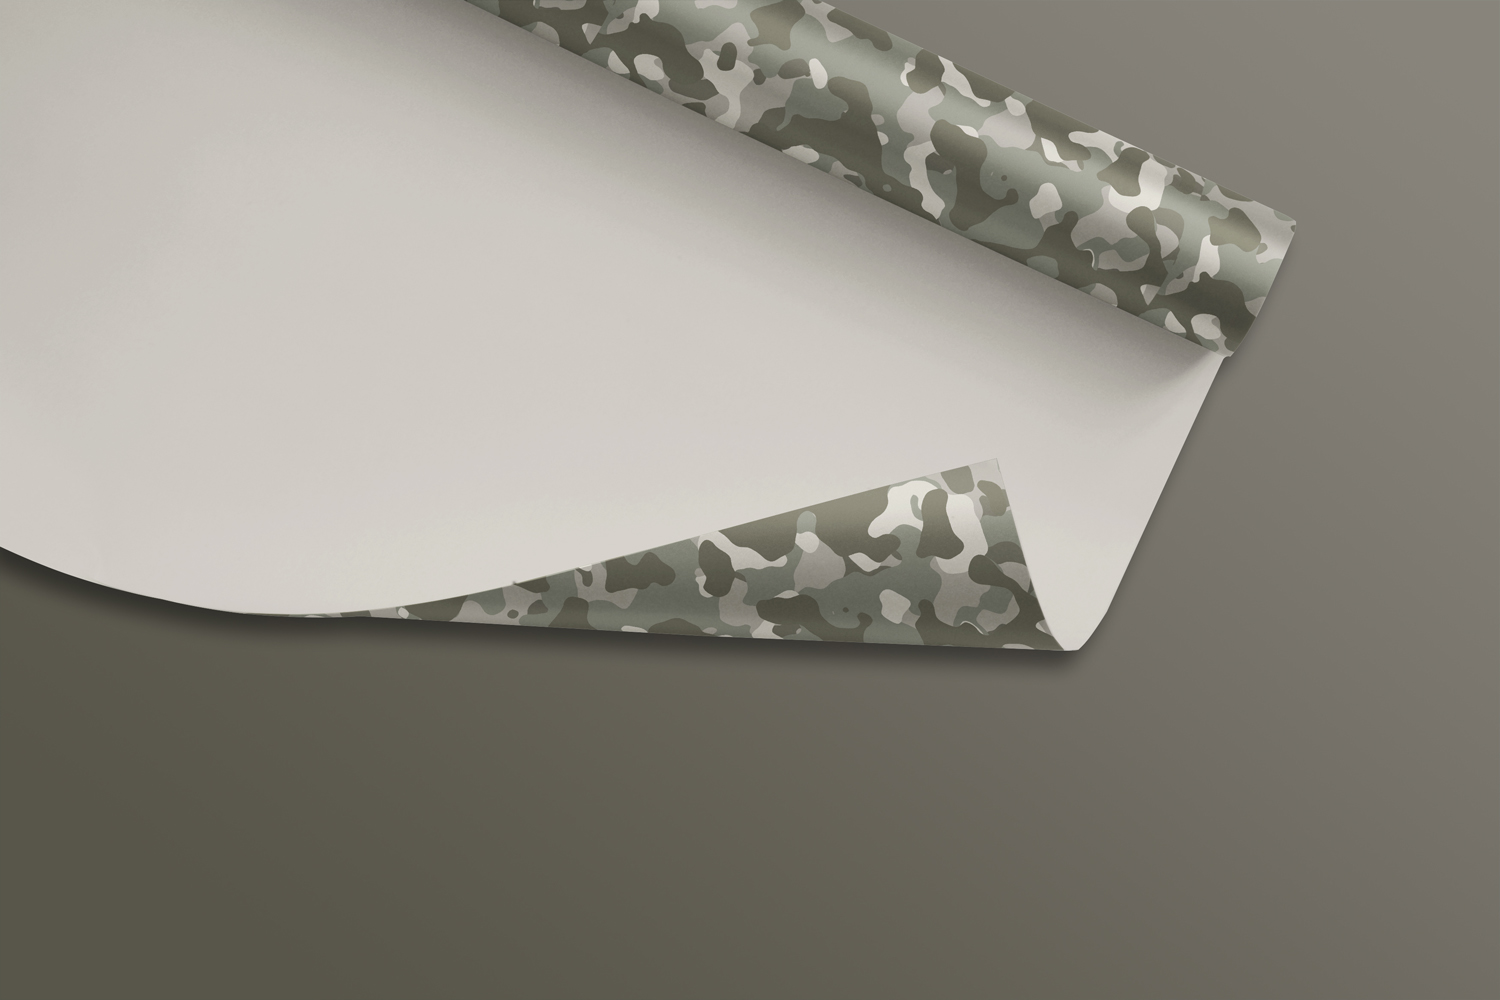 40 Alternative Camouflage Paper Designs example image 20